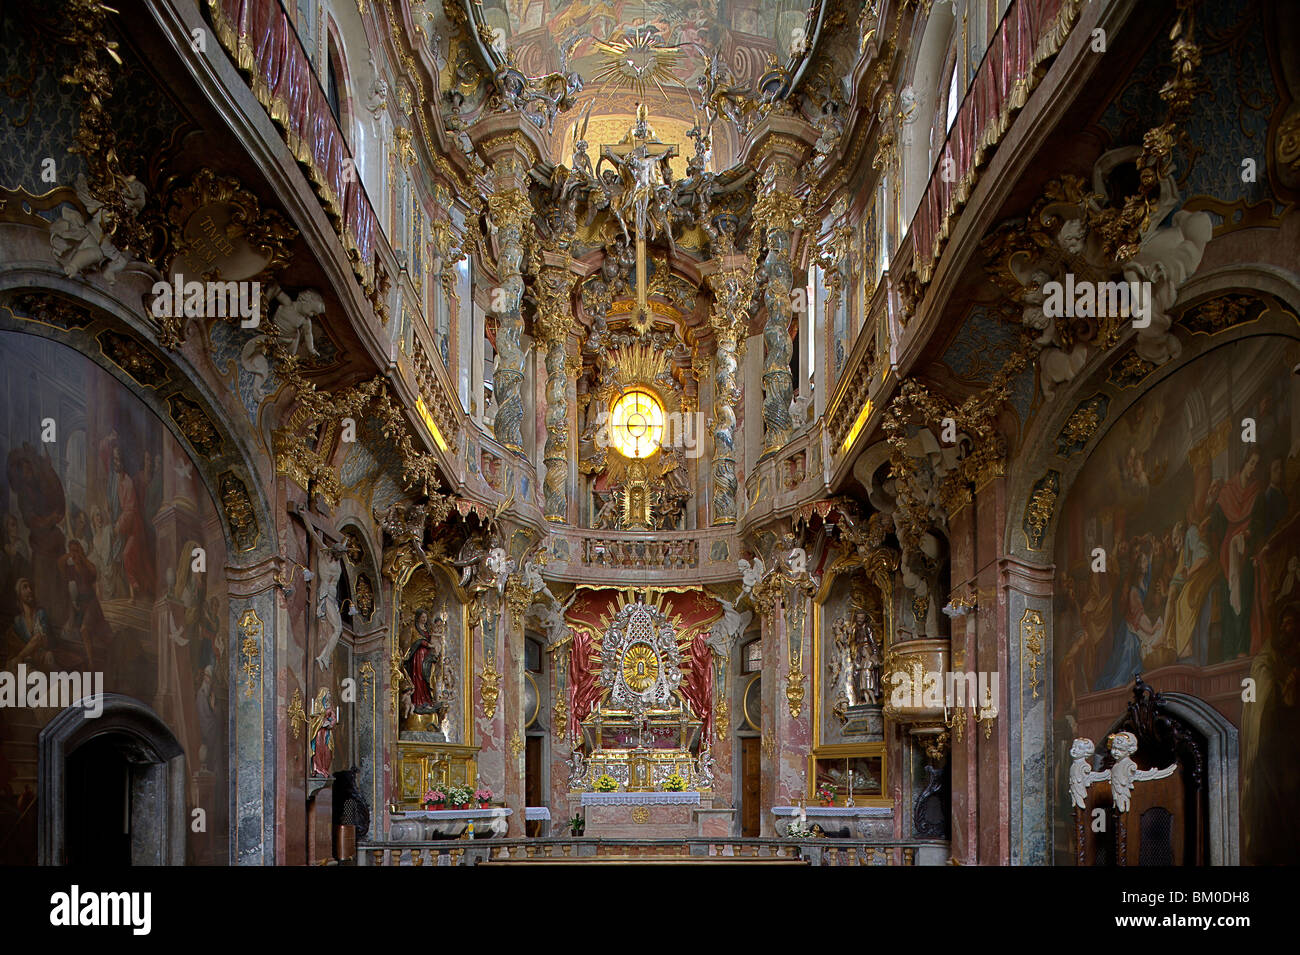 Interior view of the Asam church, Asamkirche, St. Johann Nepomuk was build in 1733–1746 by the Asam brothers Asam, Stock Photo